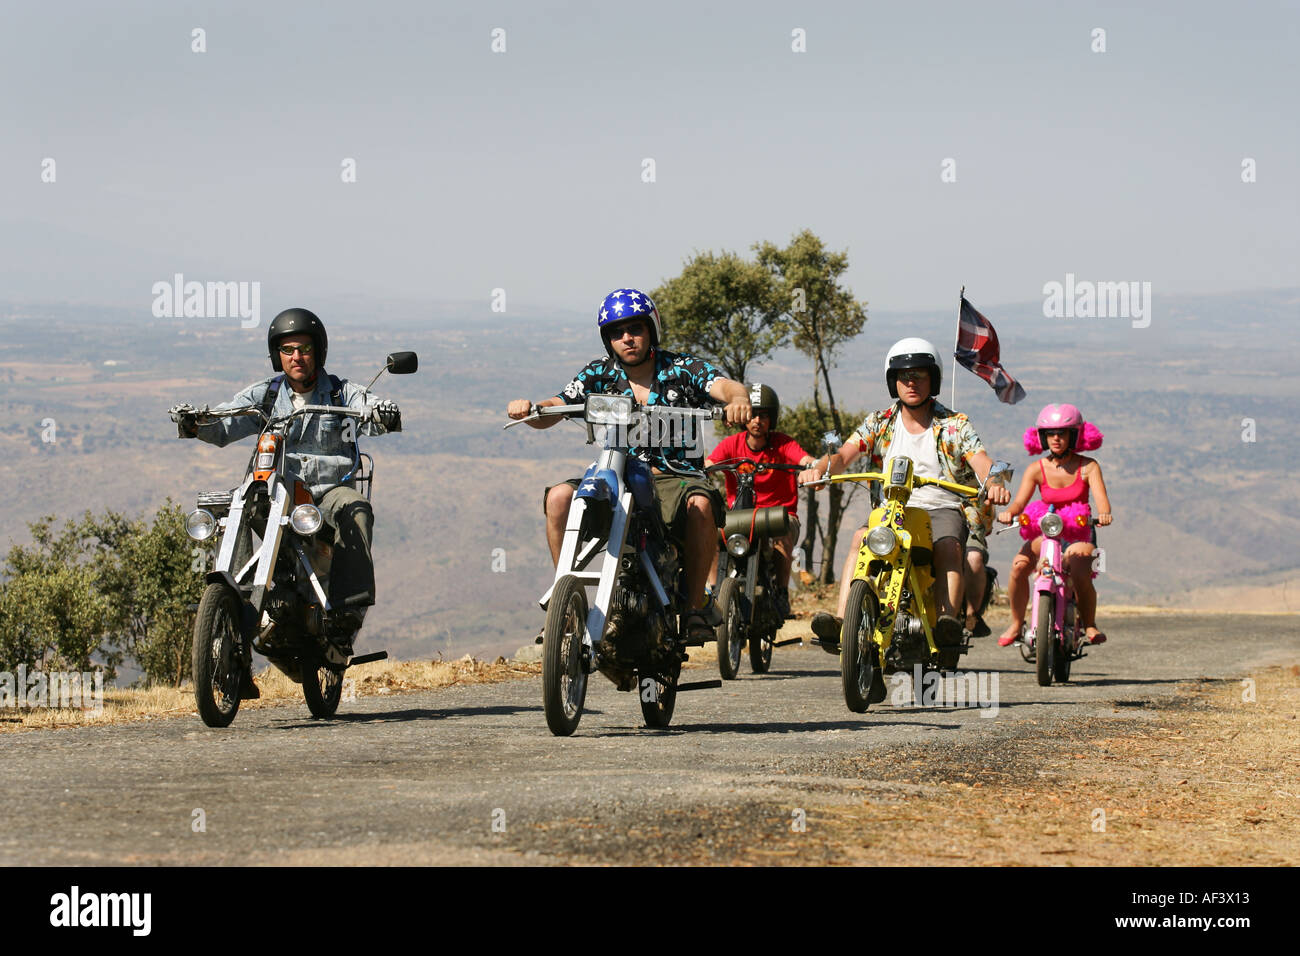 a group of bikers on customised moped motorbikes - Stock Image